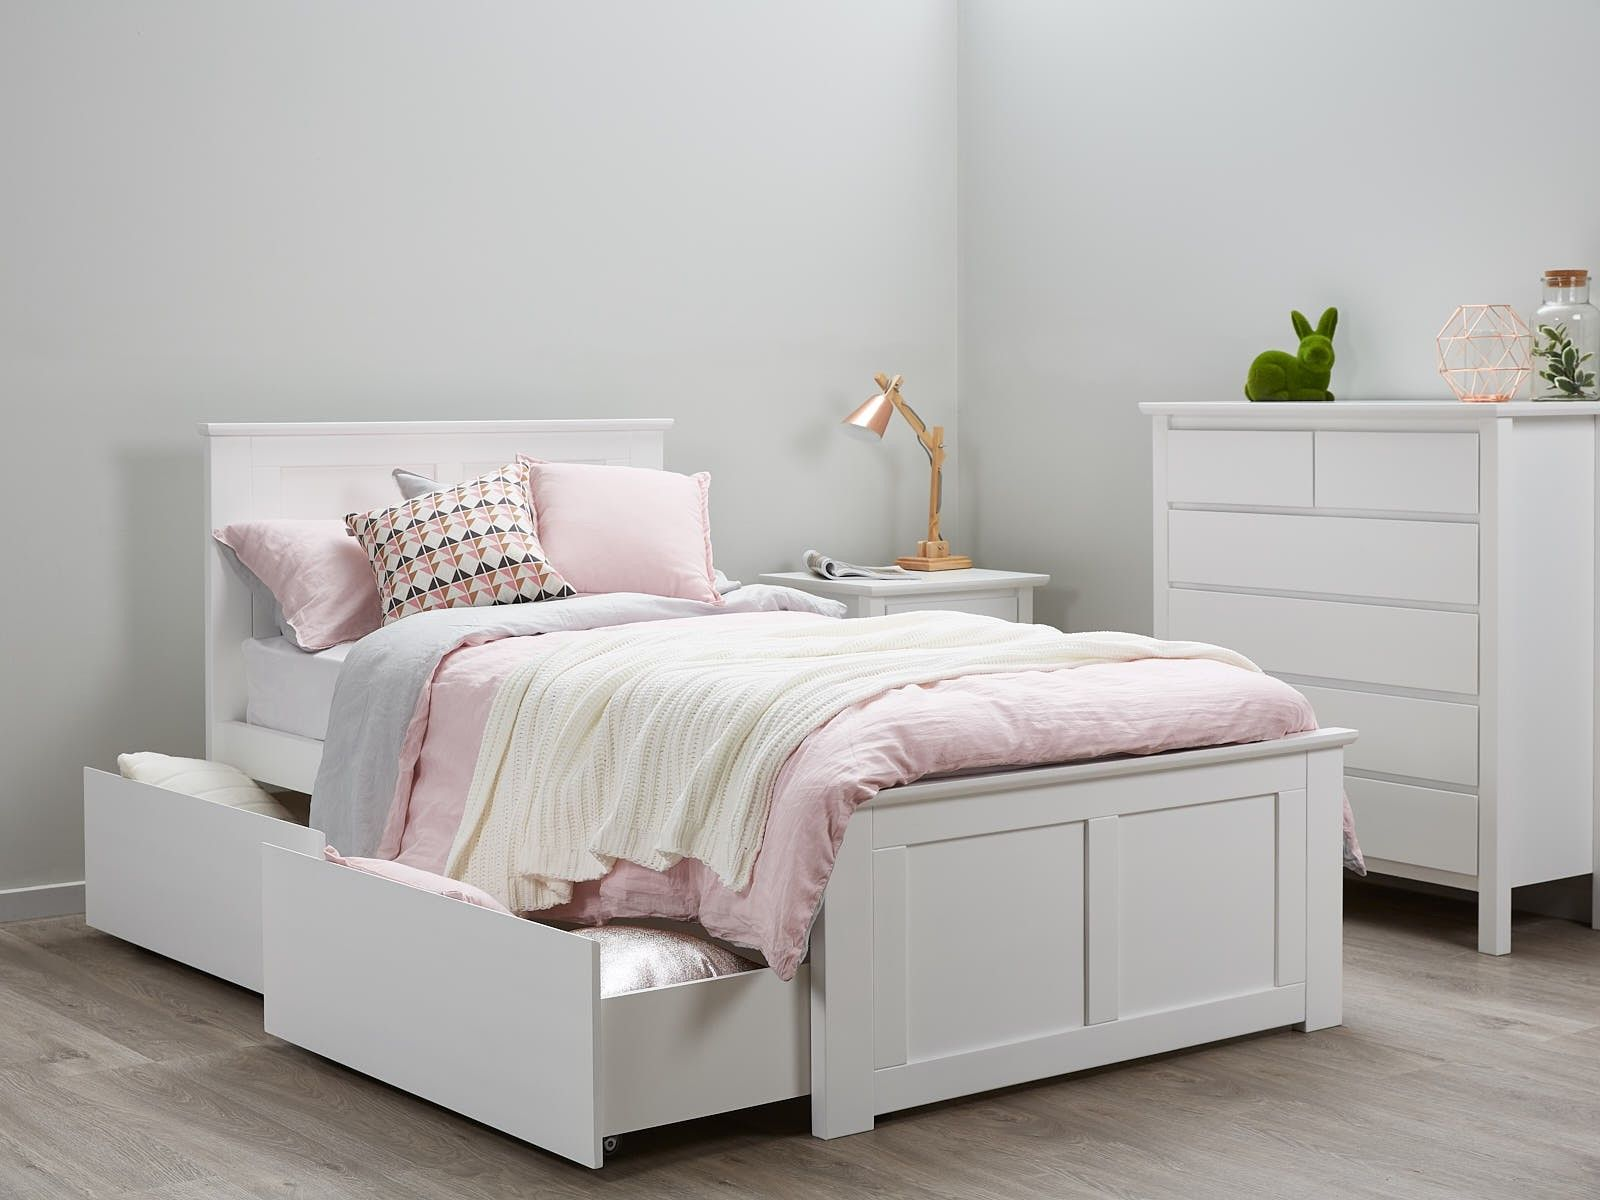 Bella White King Single Storage Bed Hardwood Frame Single Beds